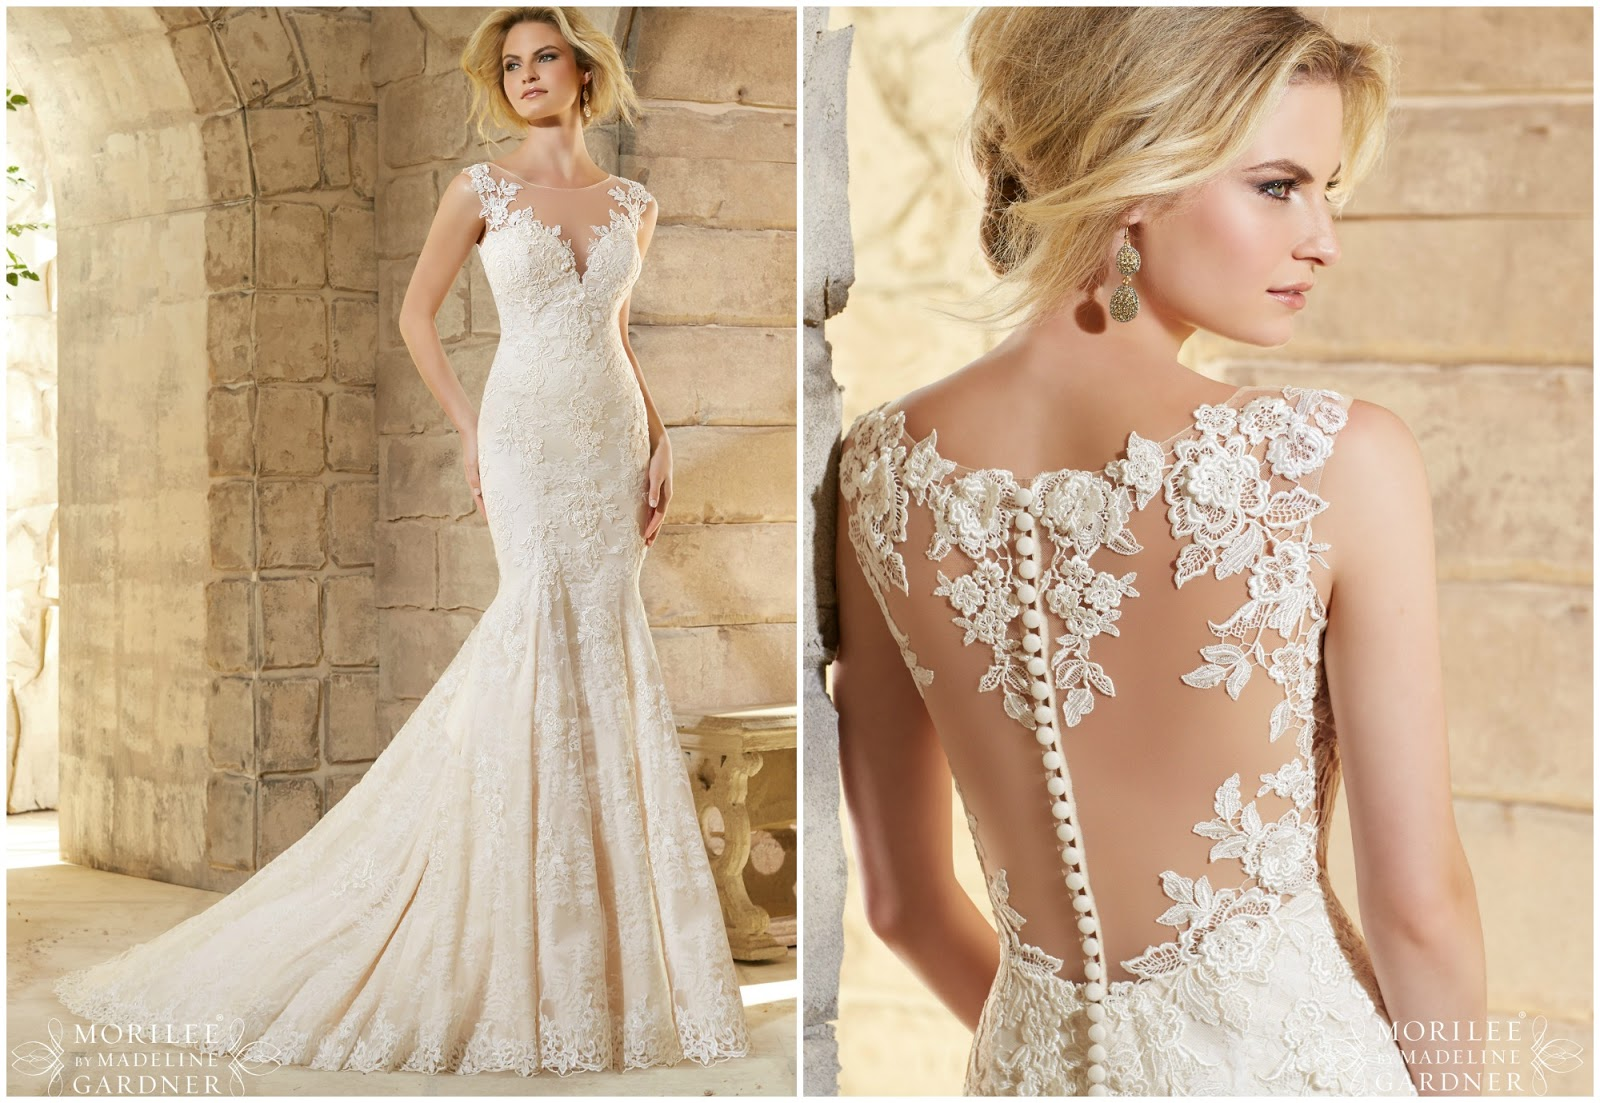 buy online wedding dresses miami